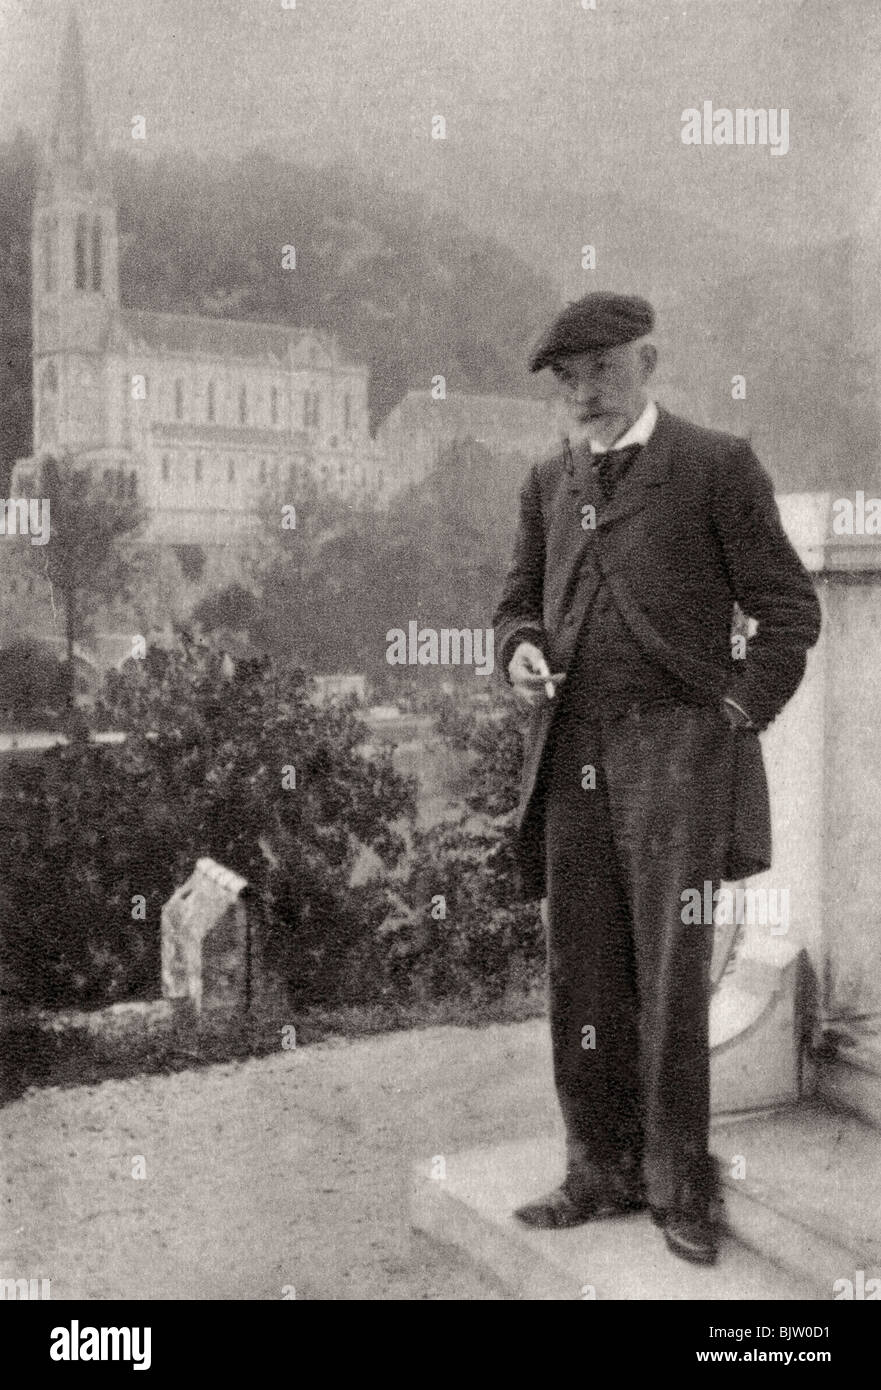 Joris-Karl Huysmans, French novelist, 1900. Artist: Unknown Stock Photo